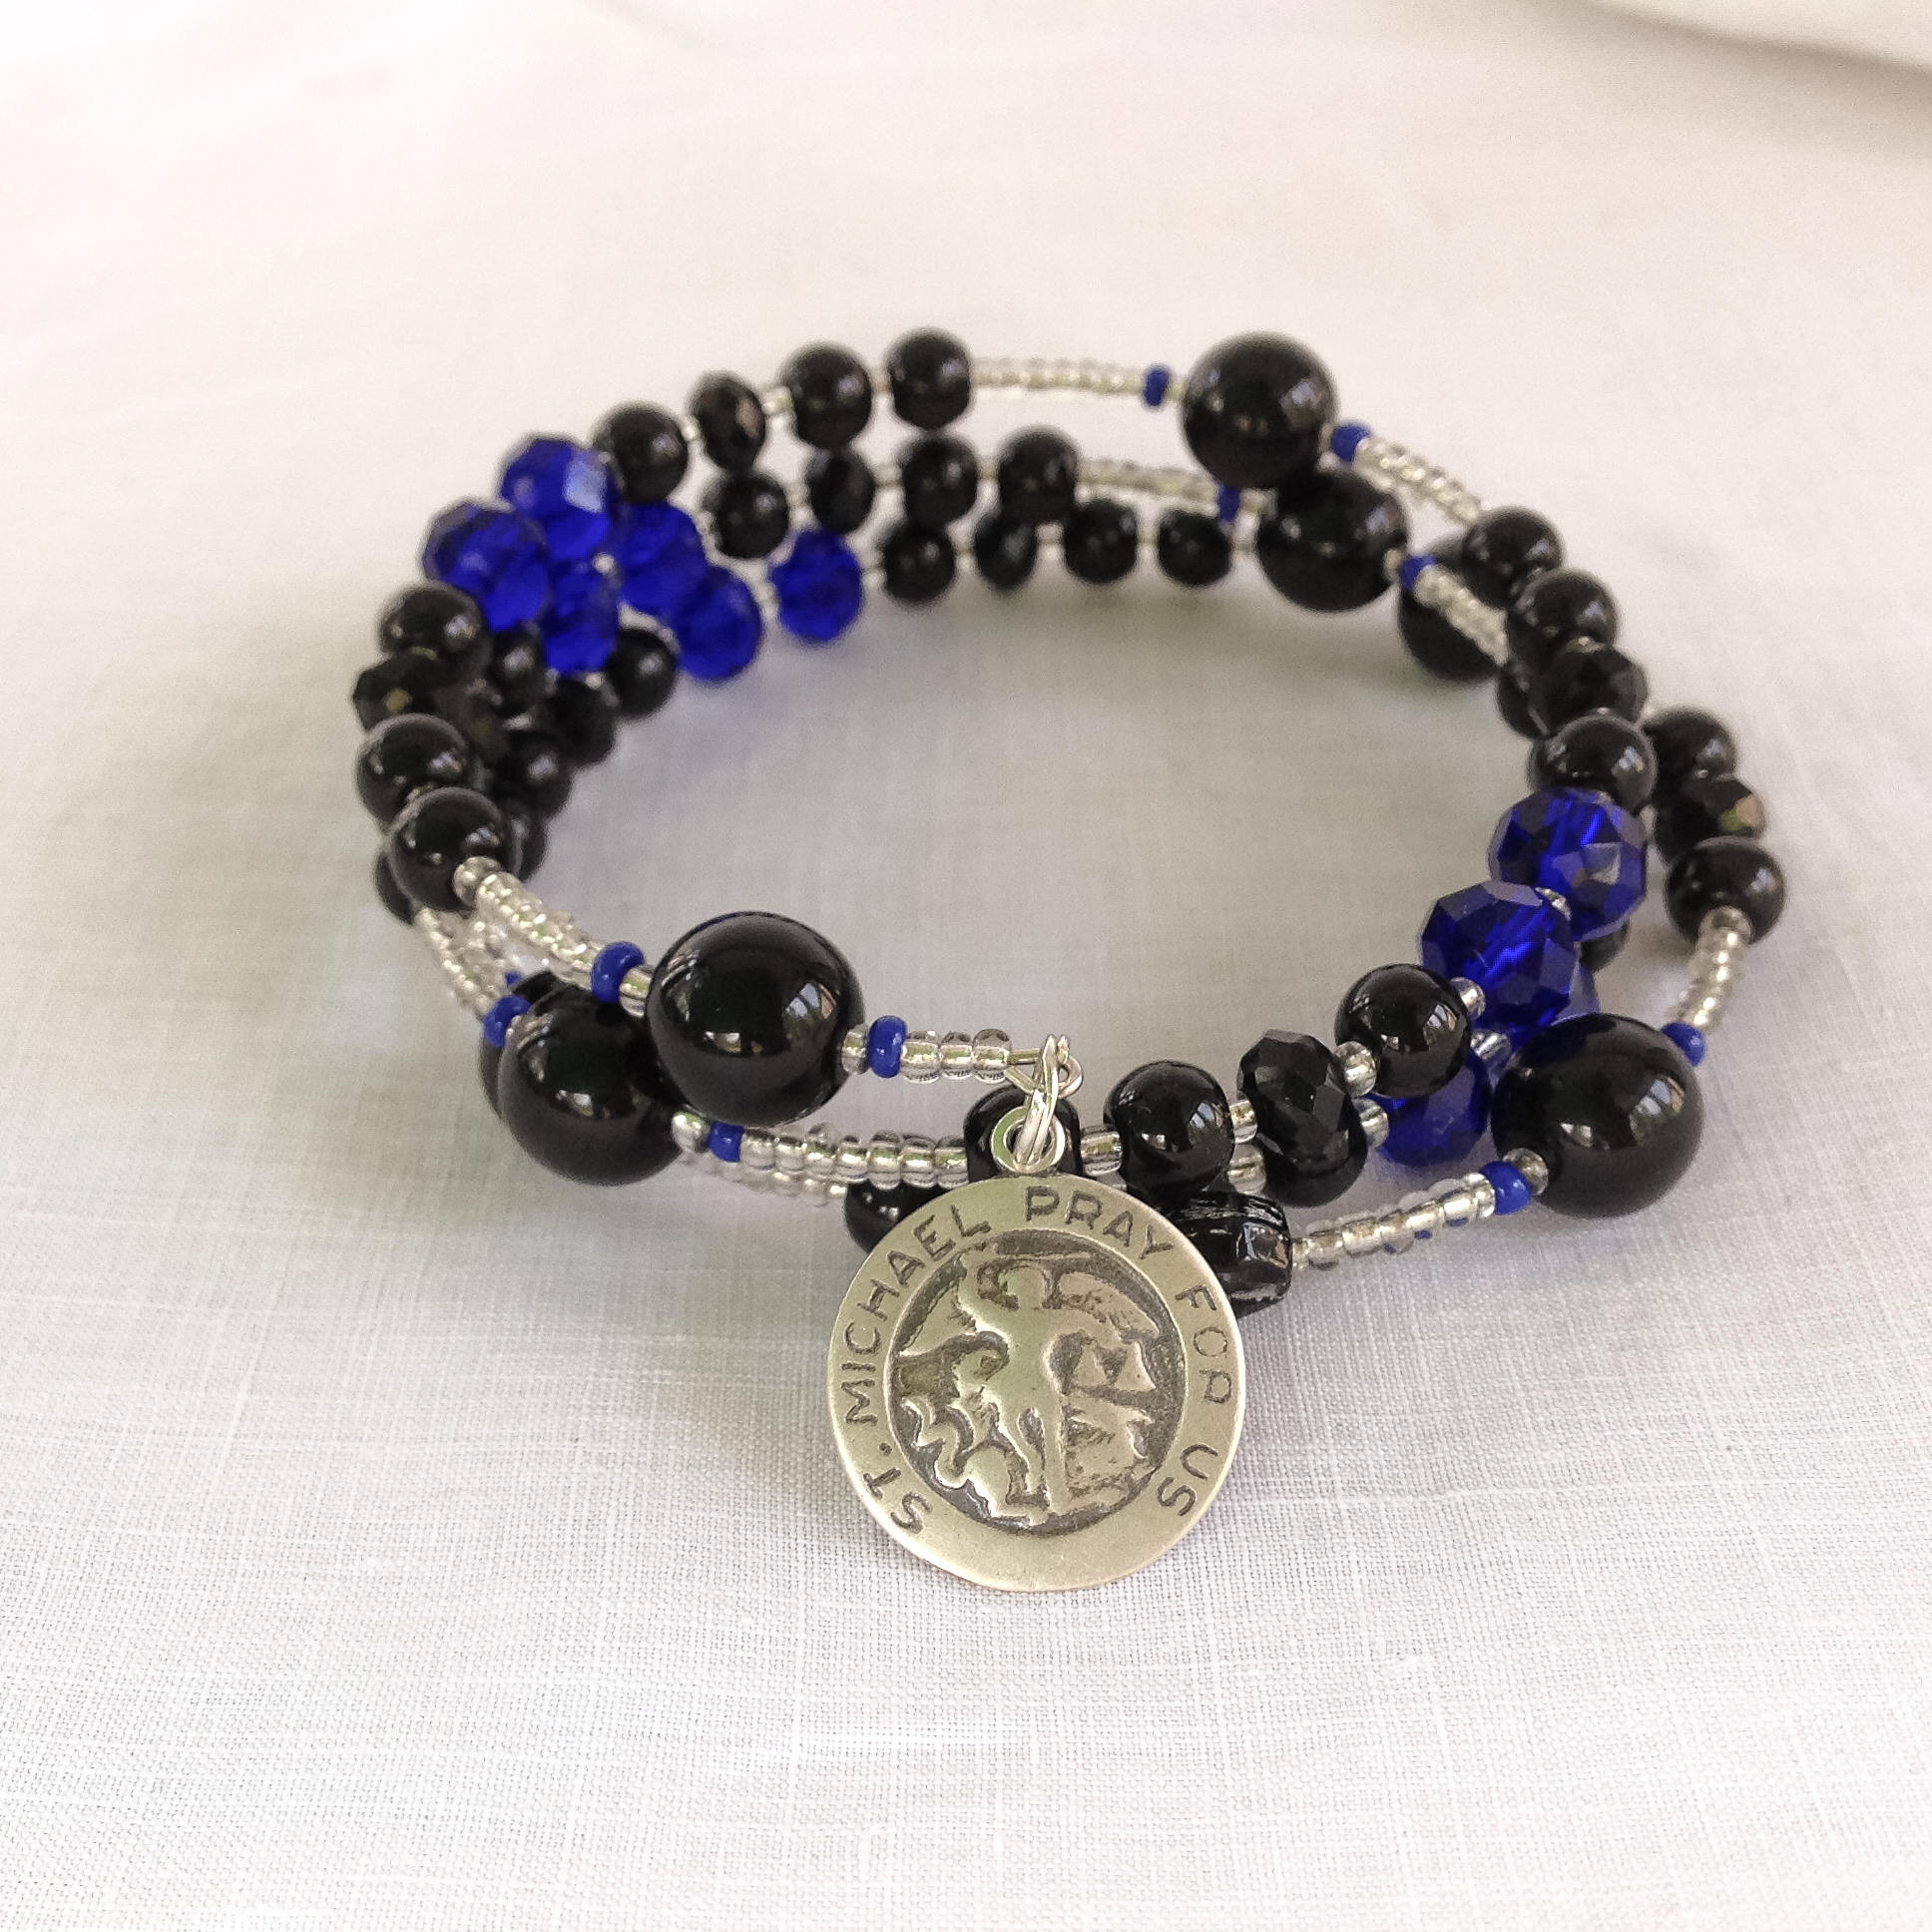 Thin Blue Line Wrap Around A Rosary Peters Square